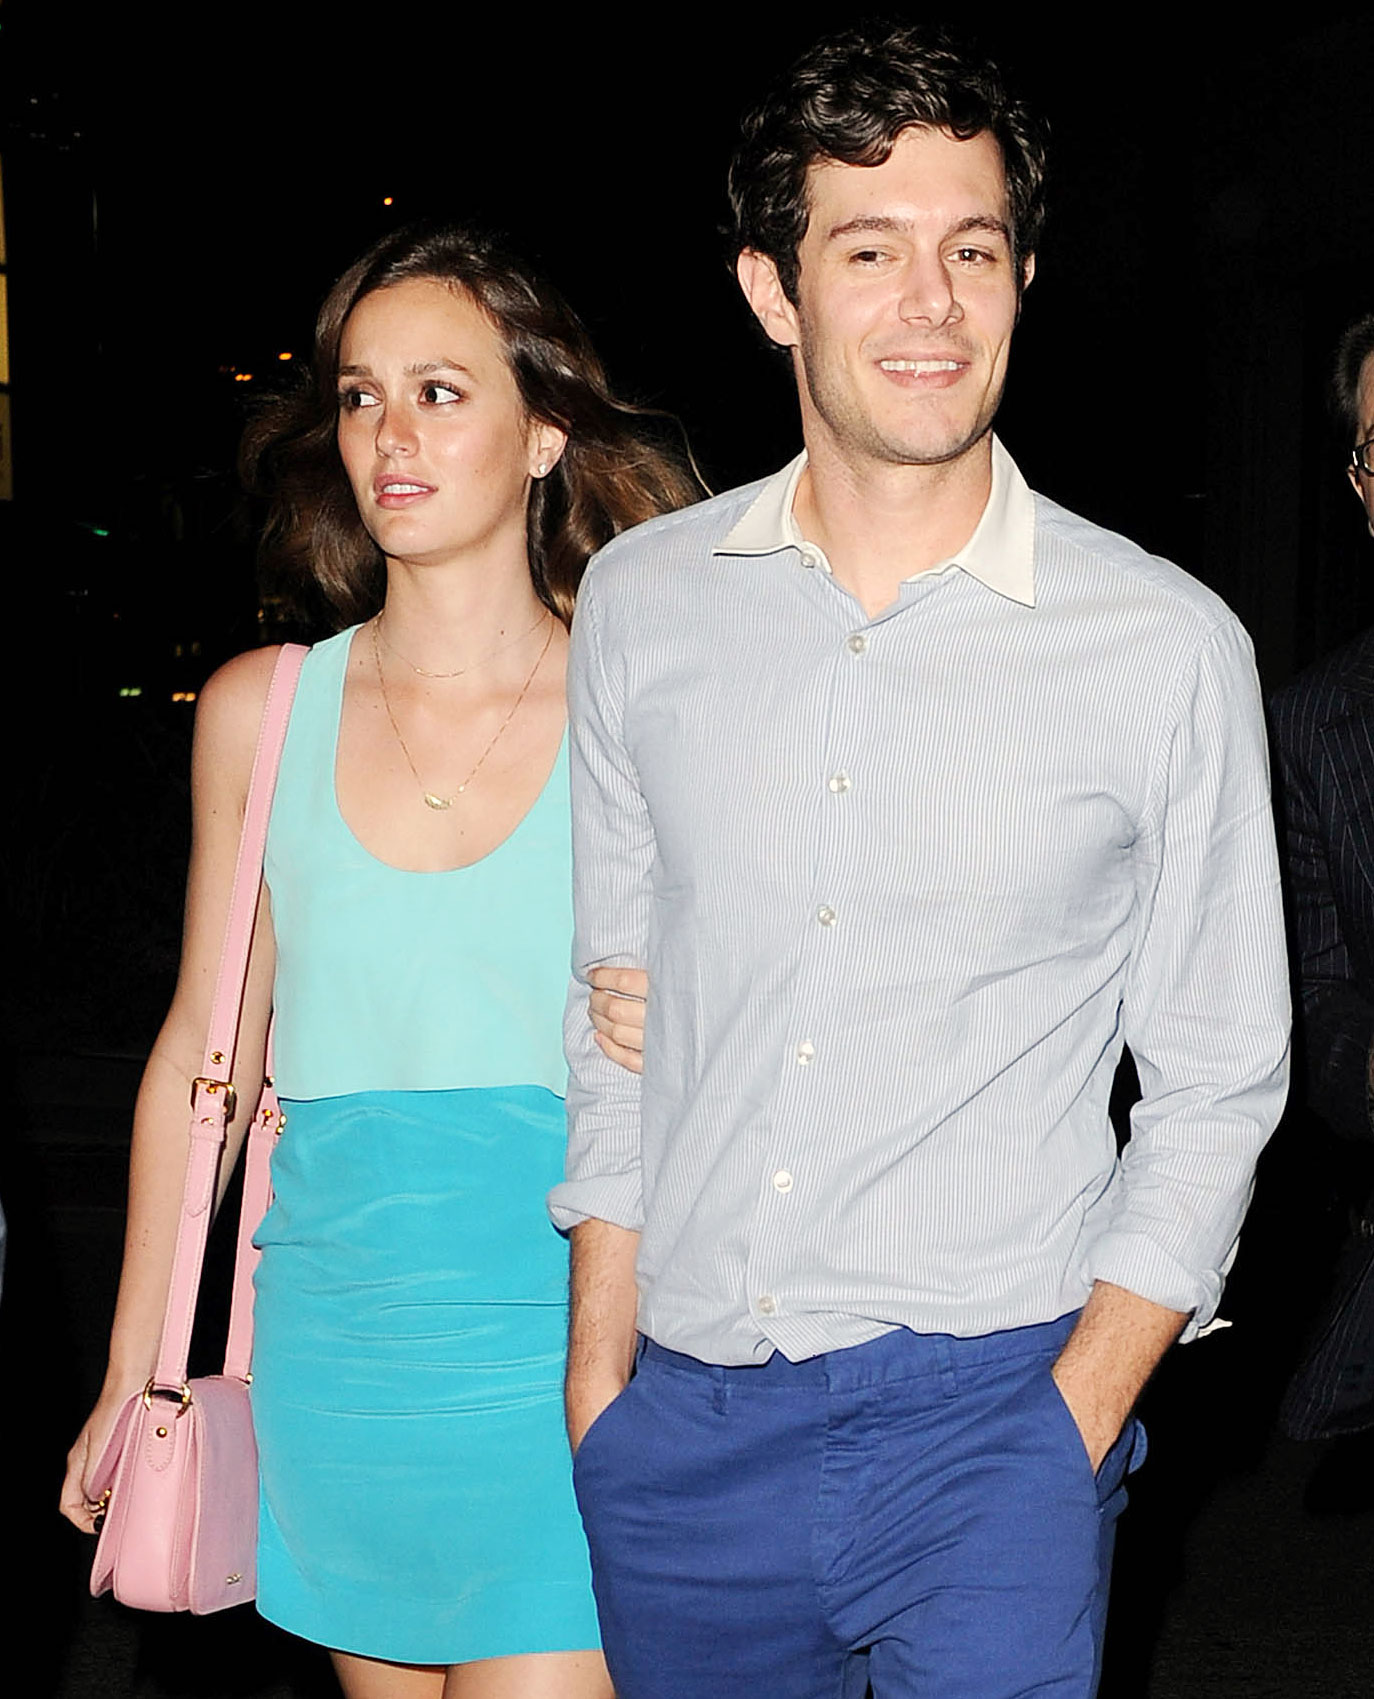 Leighton Meester Adam Brody Relationship Timeline - The pair held hands during their first public appearance as a couple in June 2013 at the premiere of Brody's film Some Girl(s) .